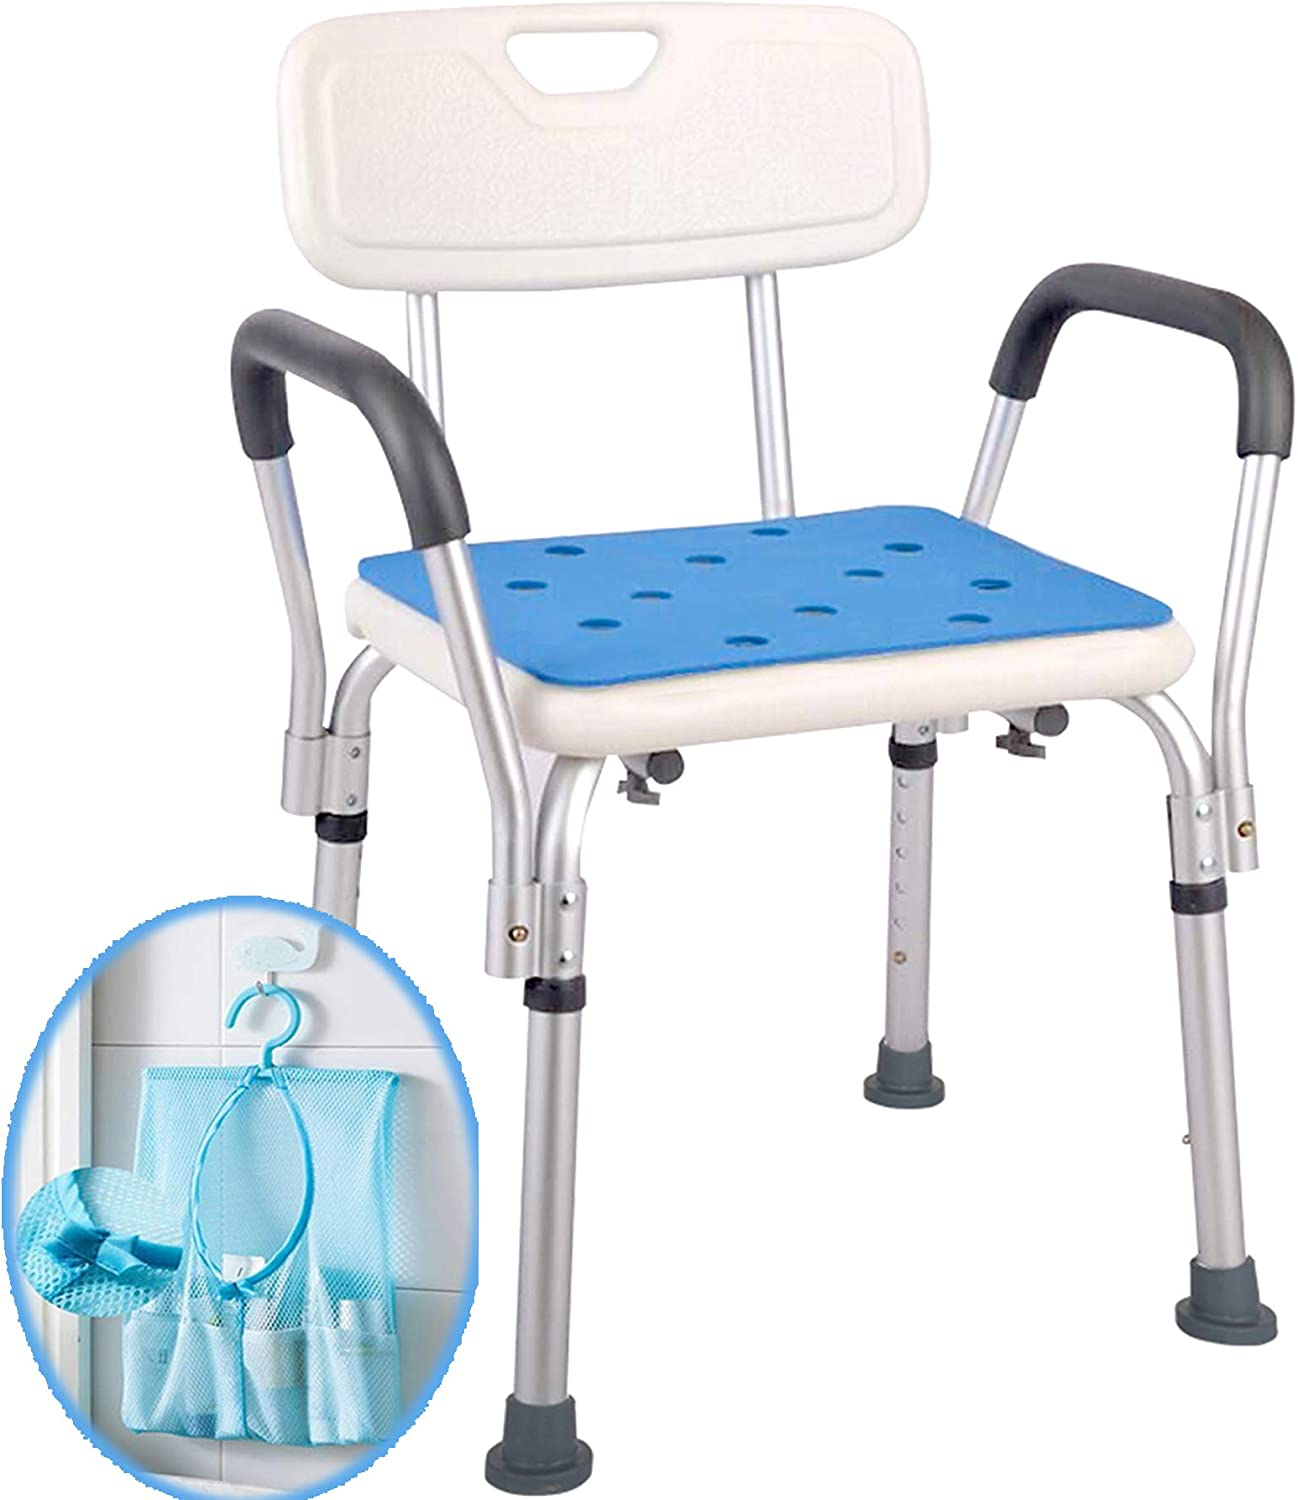 Medokare Shower Chair For Elderly Easily Adjustable Chairs For Inside Bathtub Or Shower With Arms Back For Adults And Seniors With Handicap White Kitchen Dining